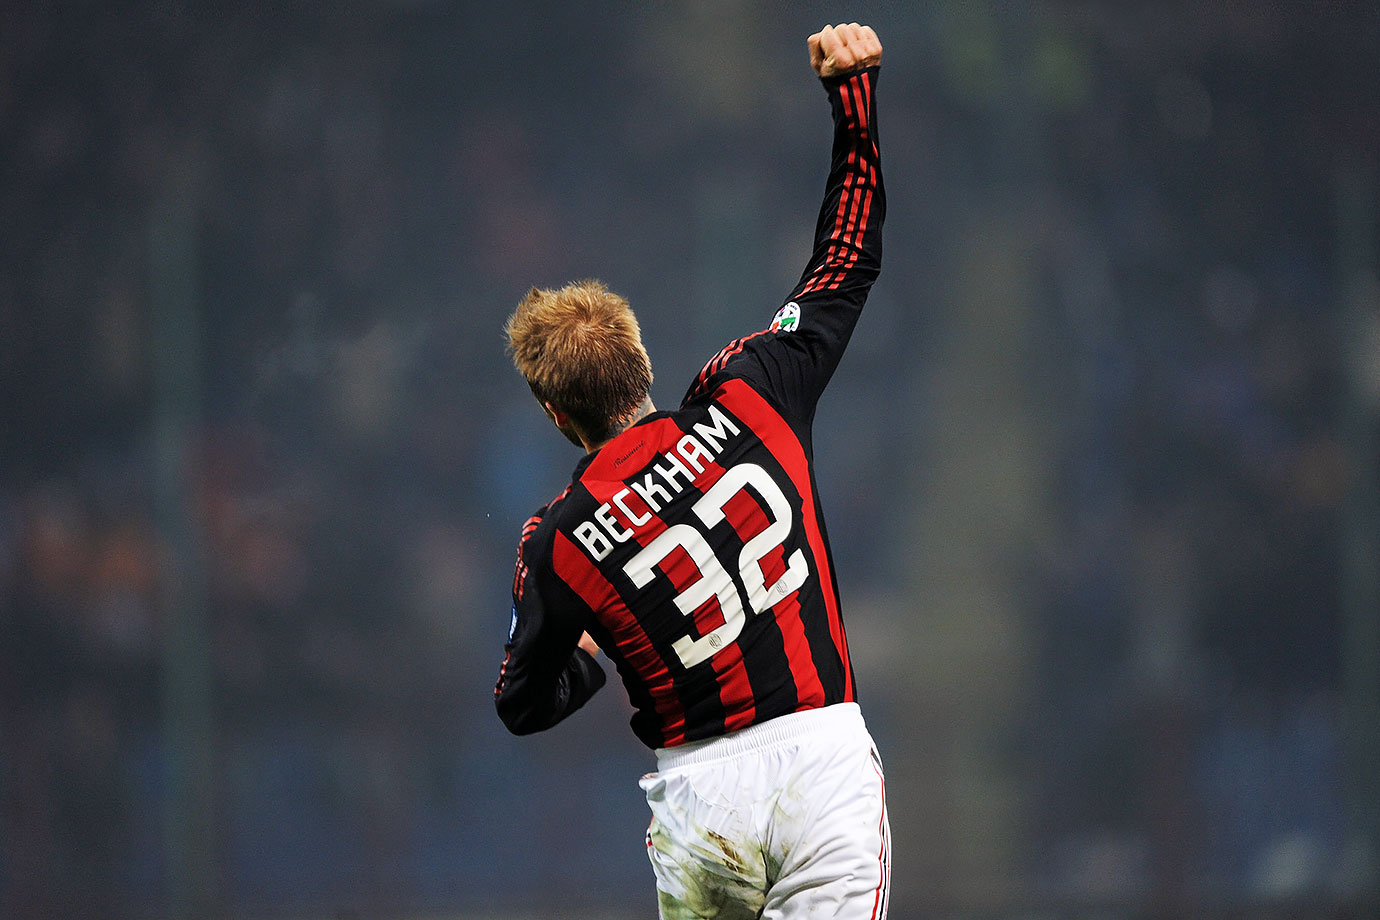 In October 2008, AC Milan announced that Beckham would join its team on loan until January. Amidst speculation, Beckham said he intended to return to the Galaxy in time for the start of the season. But, after scoring two goals and two assists in his first five games for Milan, Becks announced that he wanted to leave the Galaxy for good. Beckham finished out the Serie A season in May and will rejoin the Galaxy this month, midway through the MLS season.